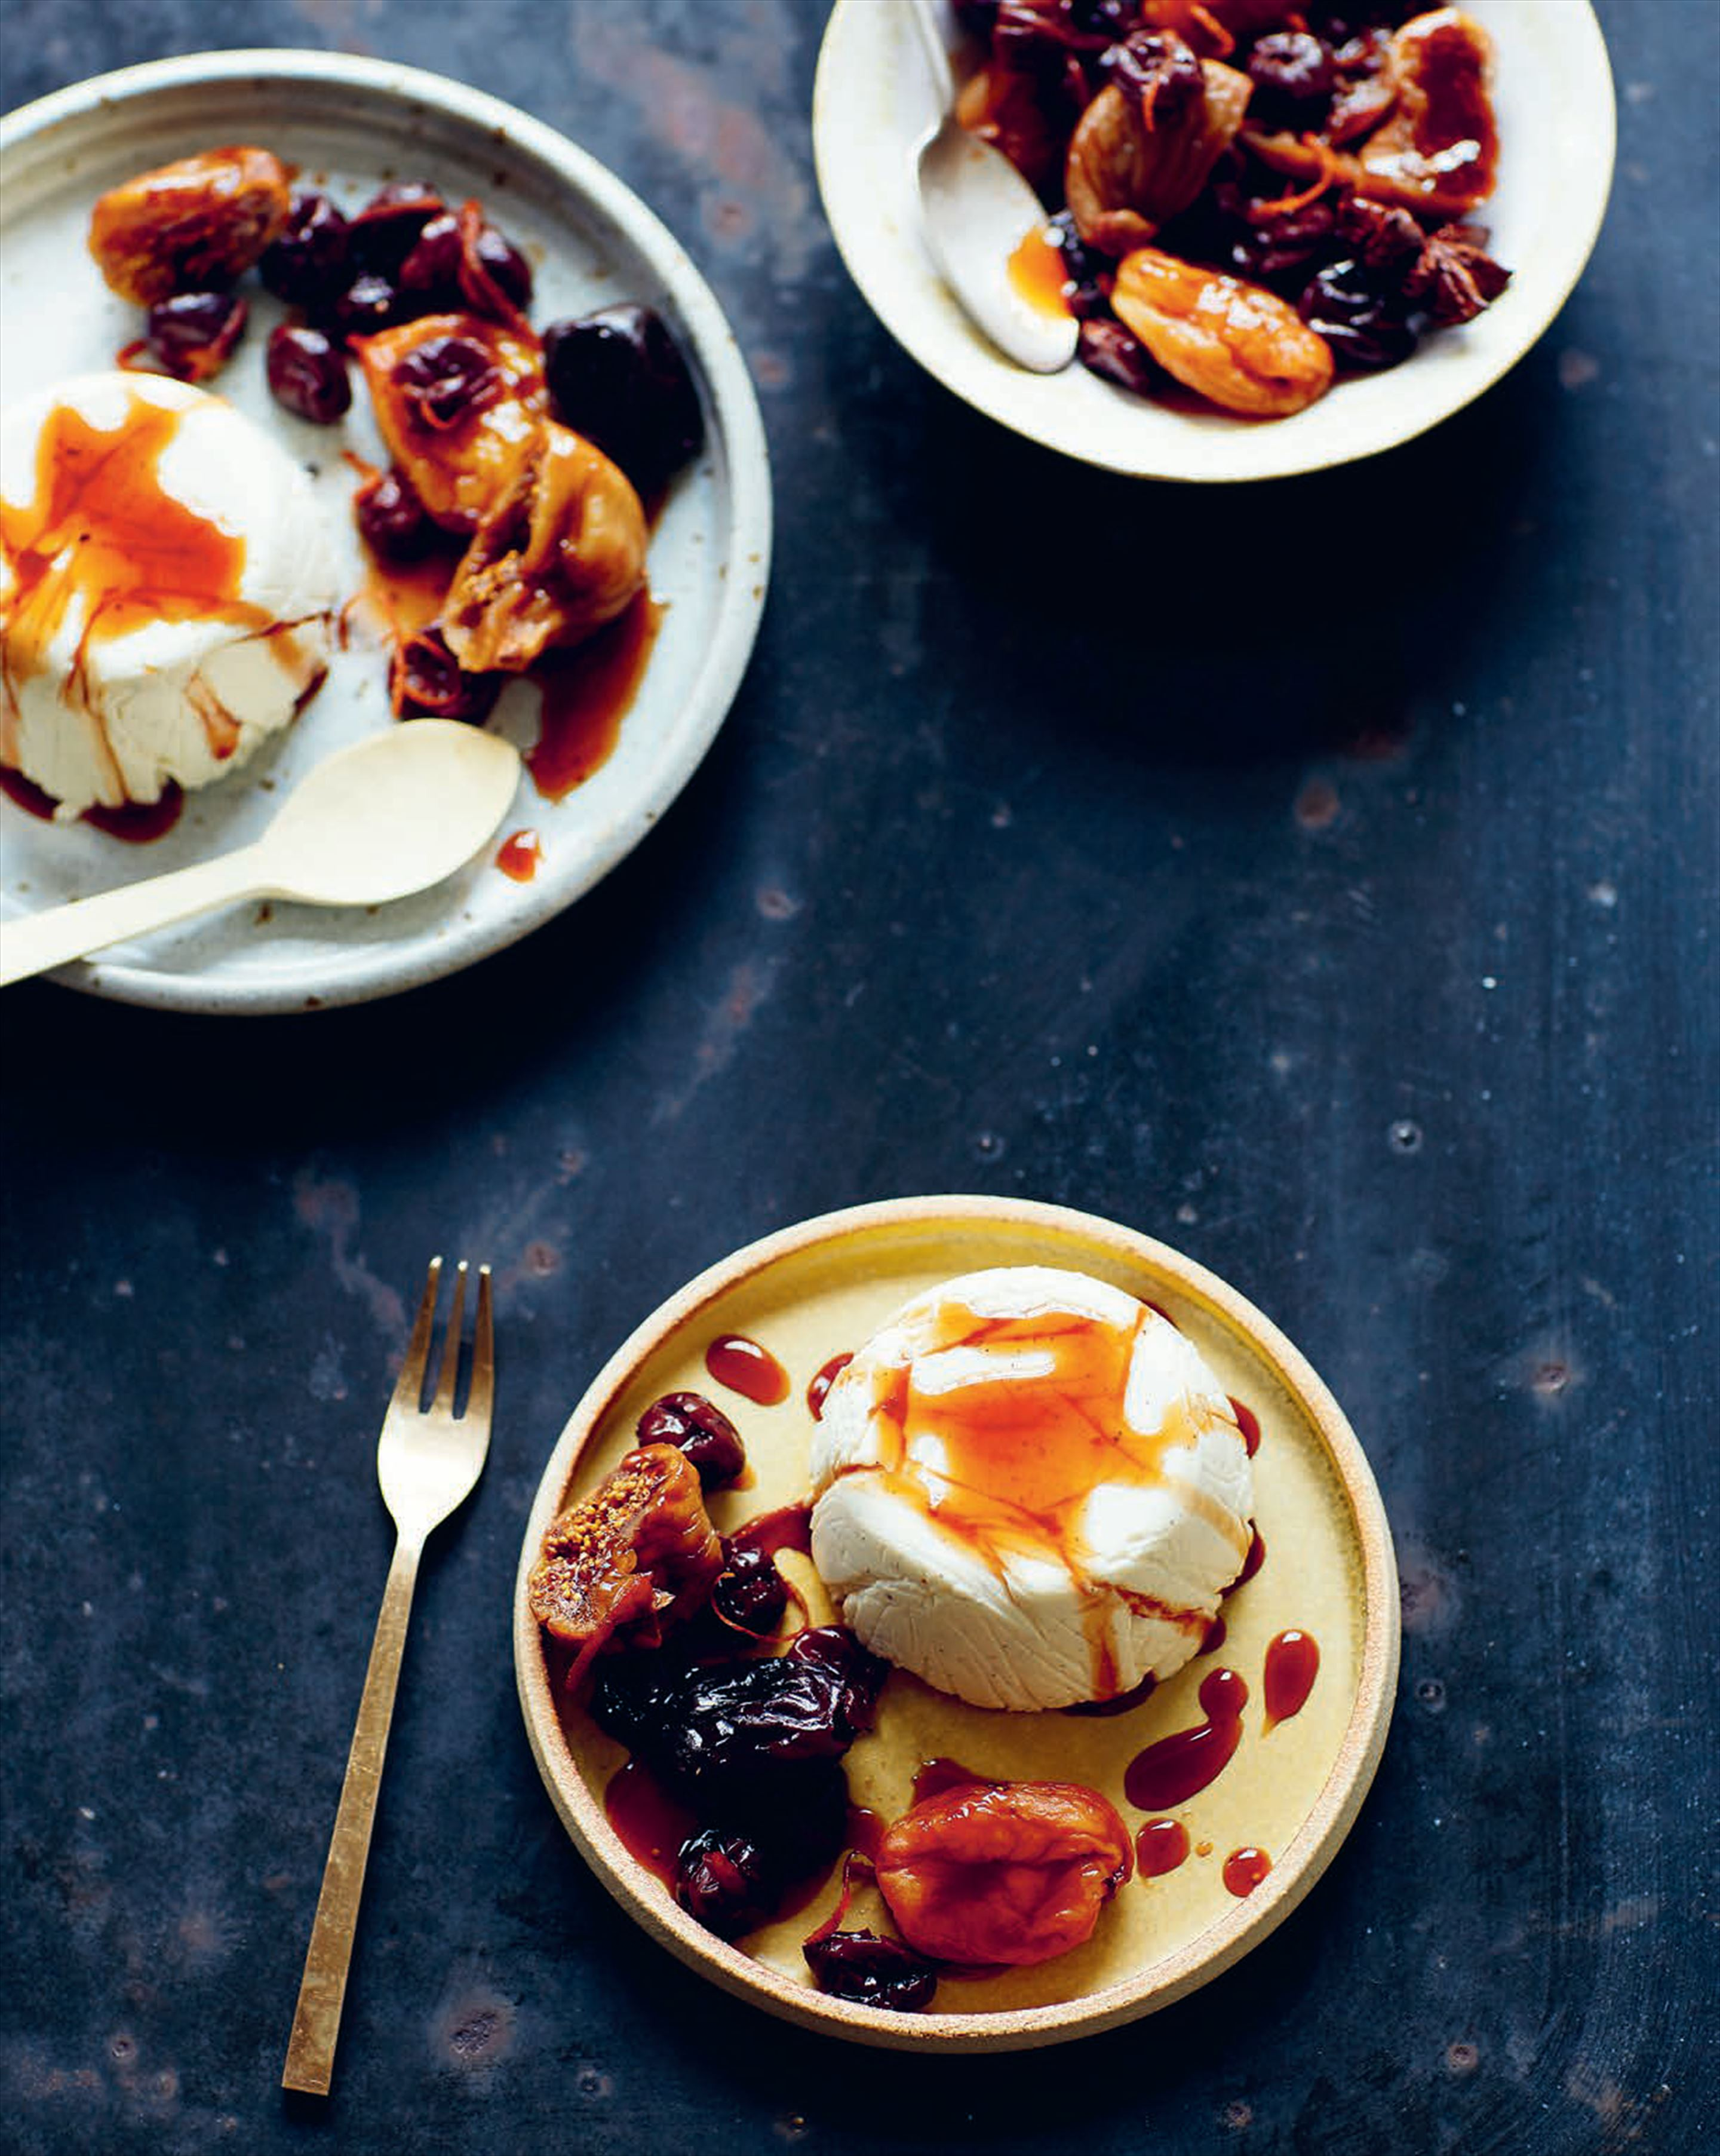 Cardamom buttermilk panna cotta with dried fruit compote